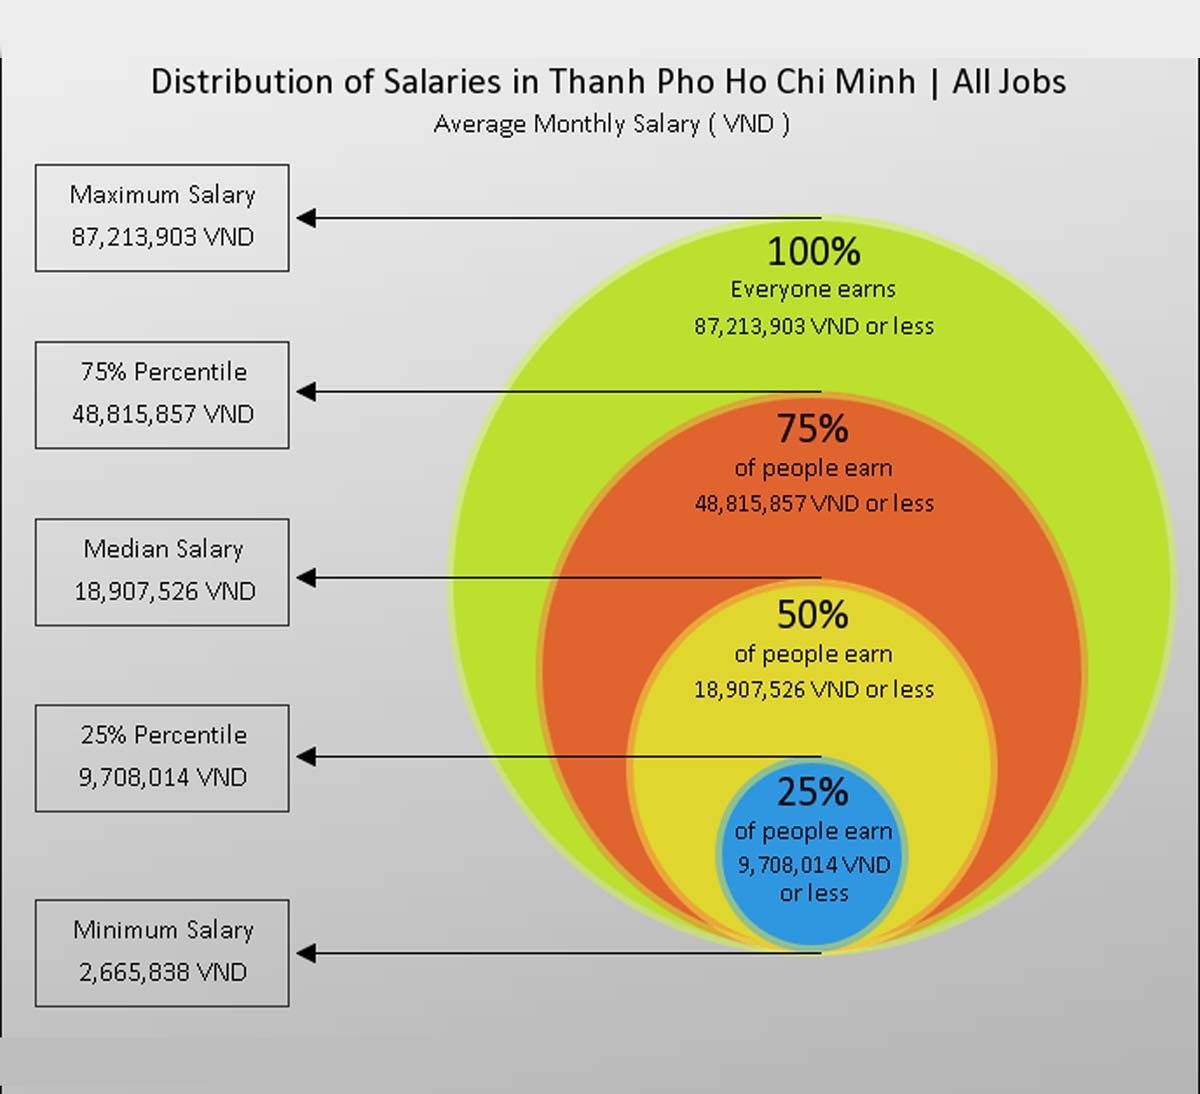 Average Salary in Thanh Pho Ho Chi Minh 2019